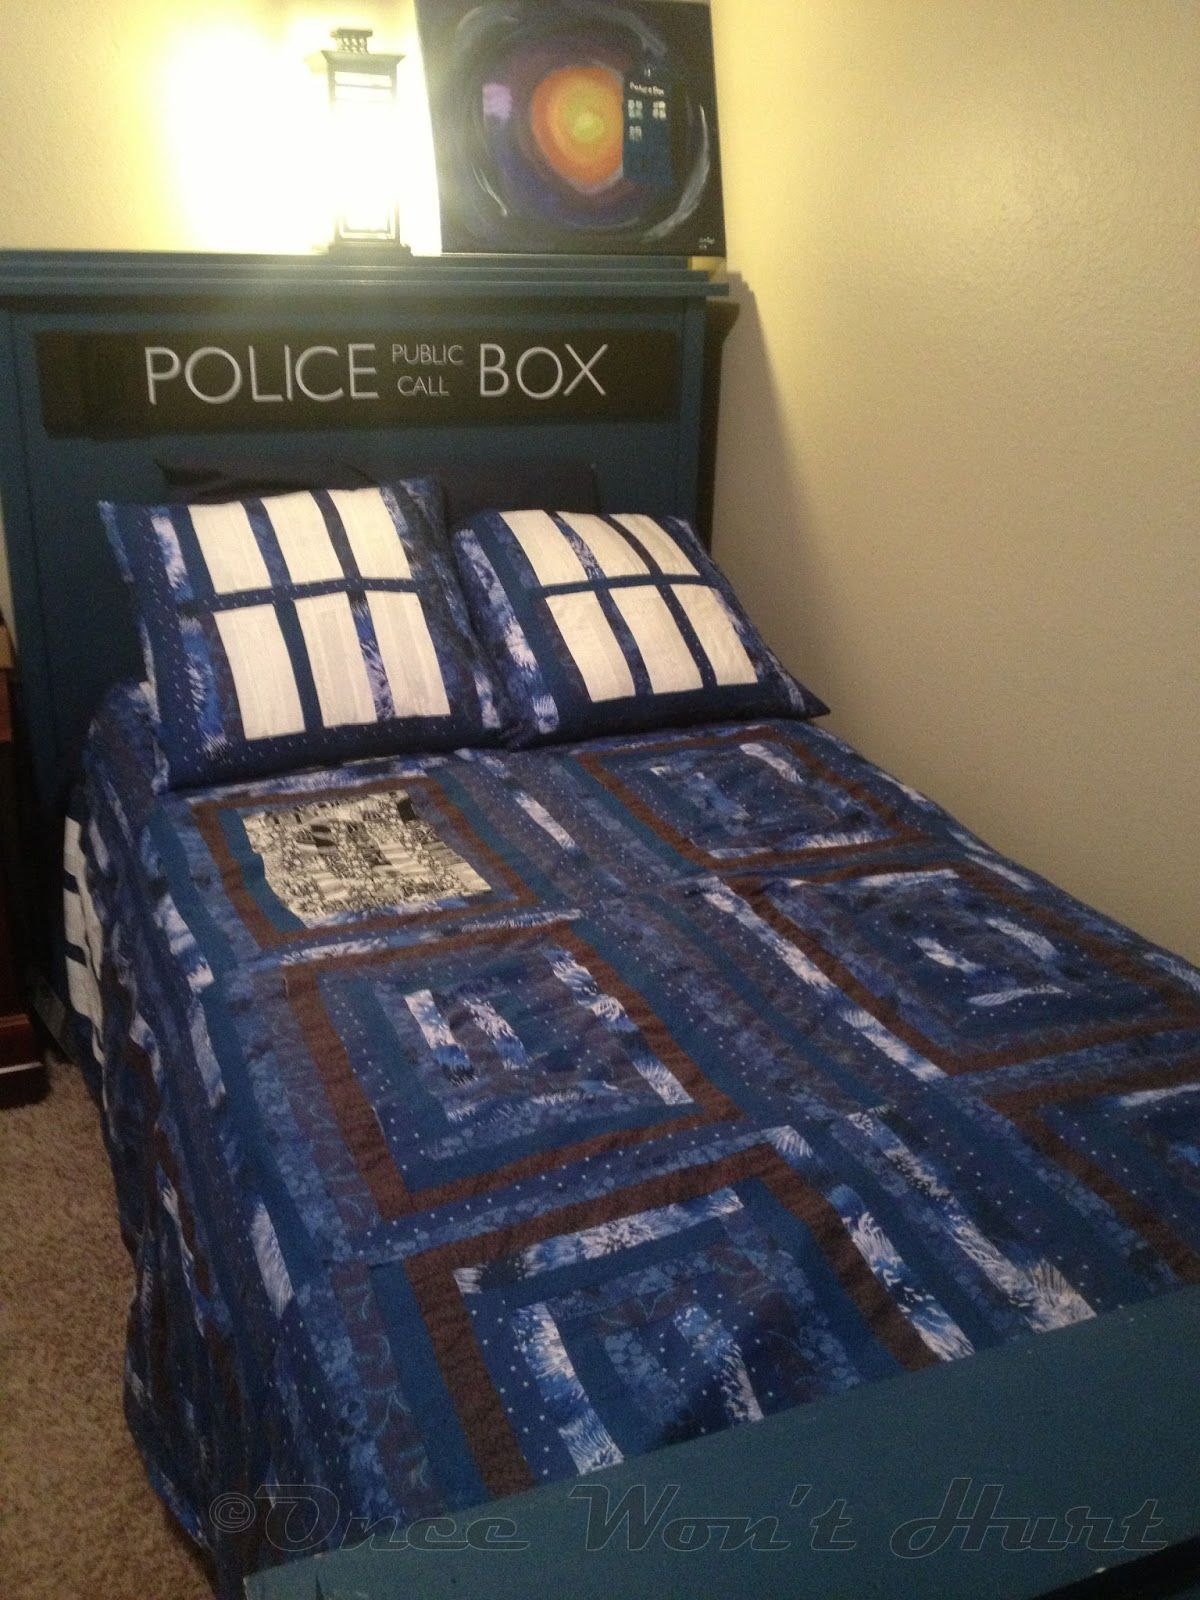 TARDIS Bed and quilt. @Kelsey Myers Myers Worstell will you make me the quilt for Whovian style lounging?